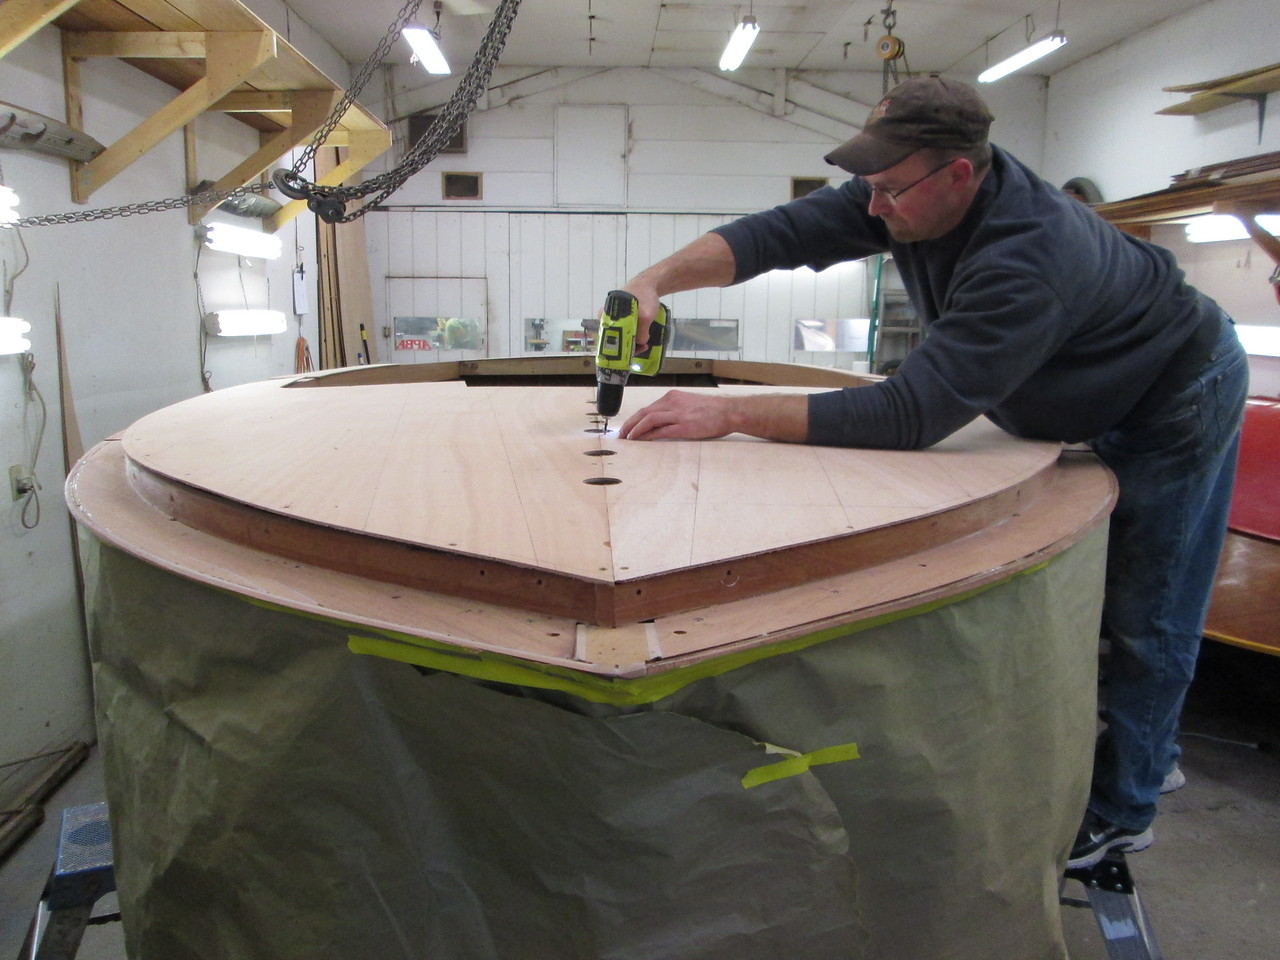 Attaching the deck skin with temporary fasteners.